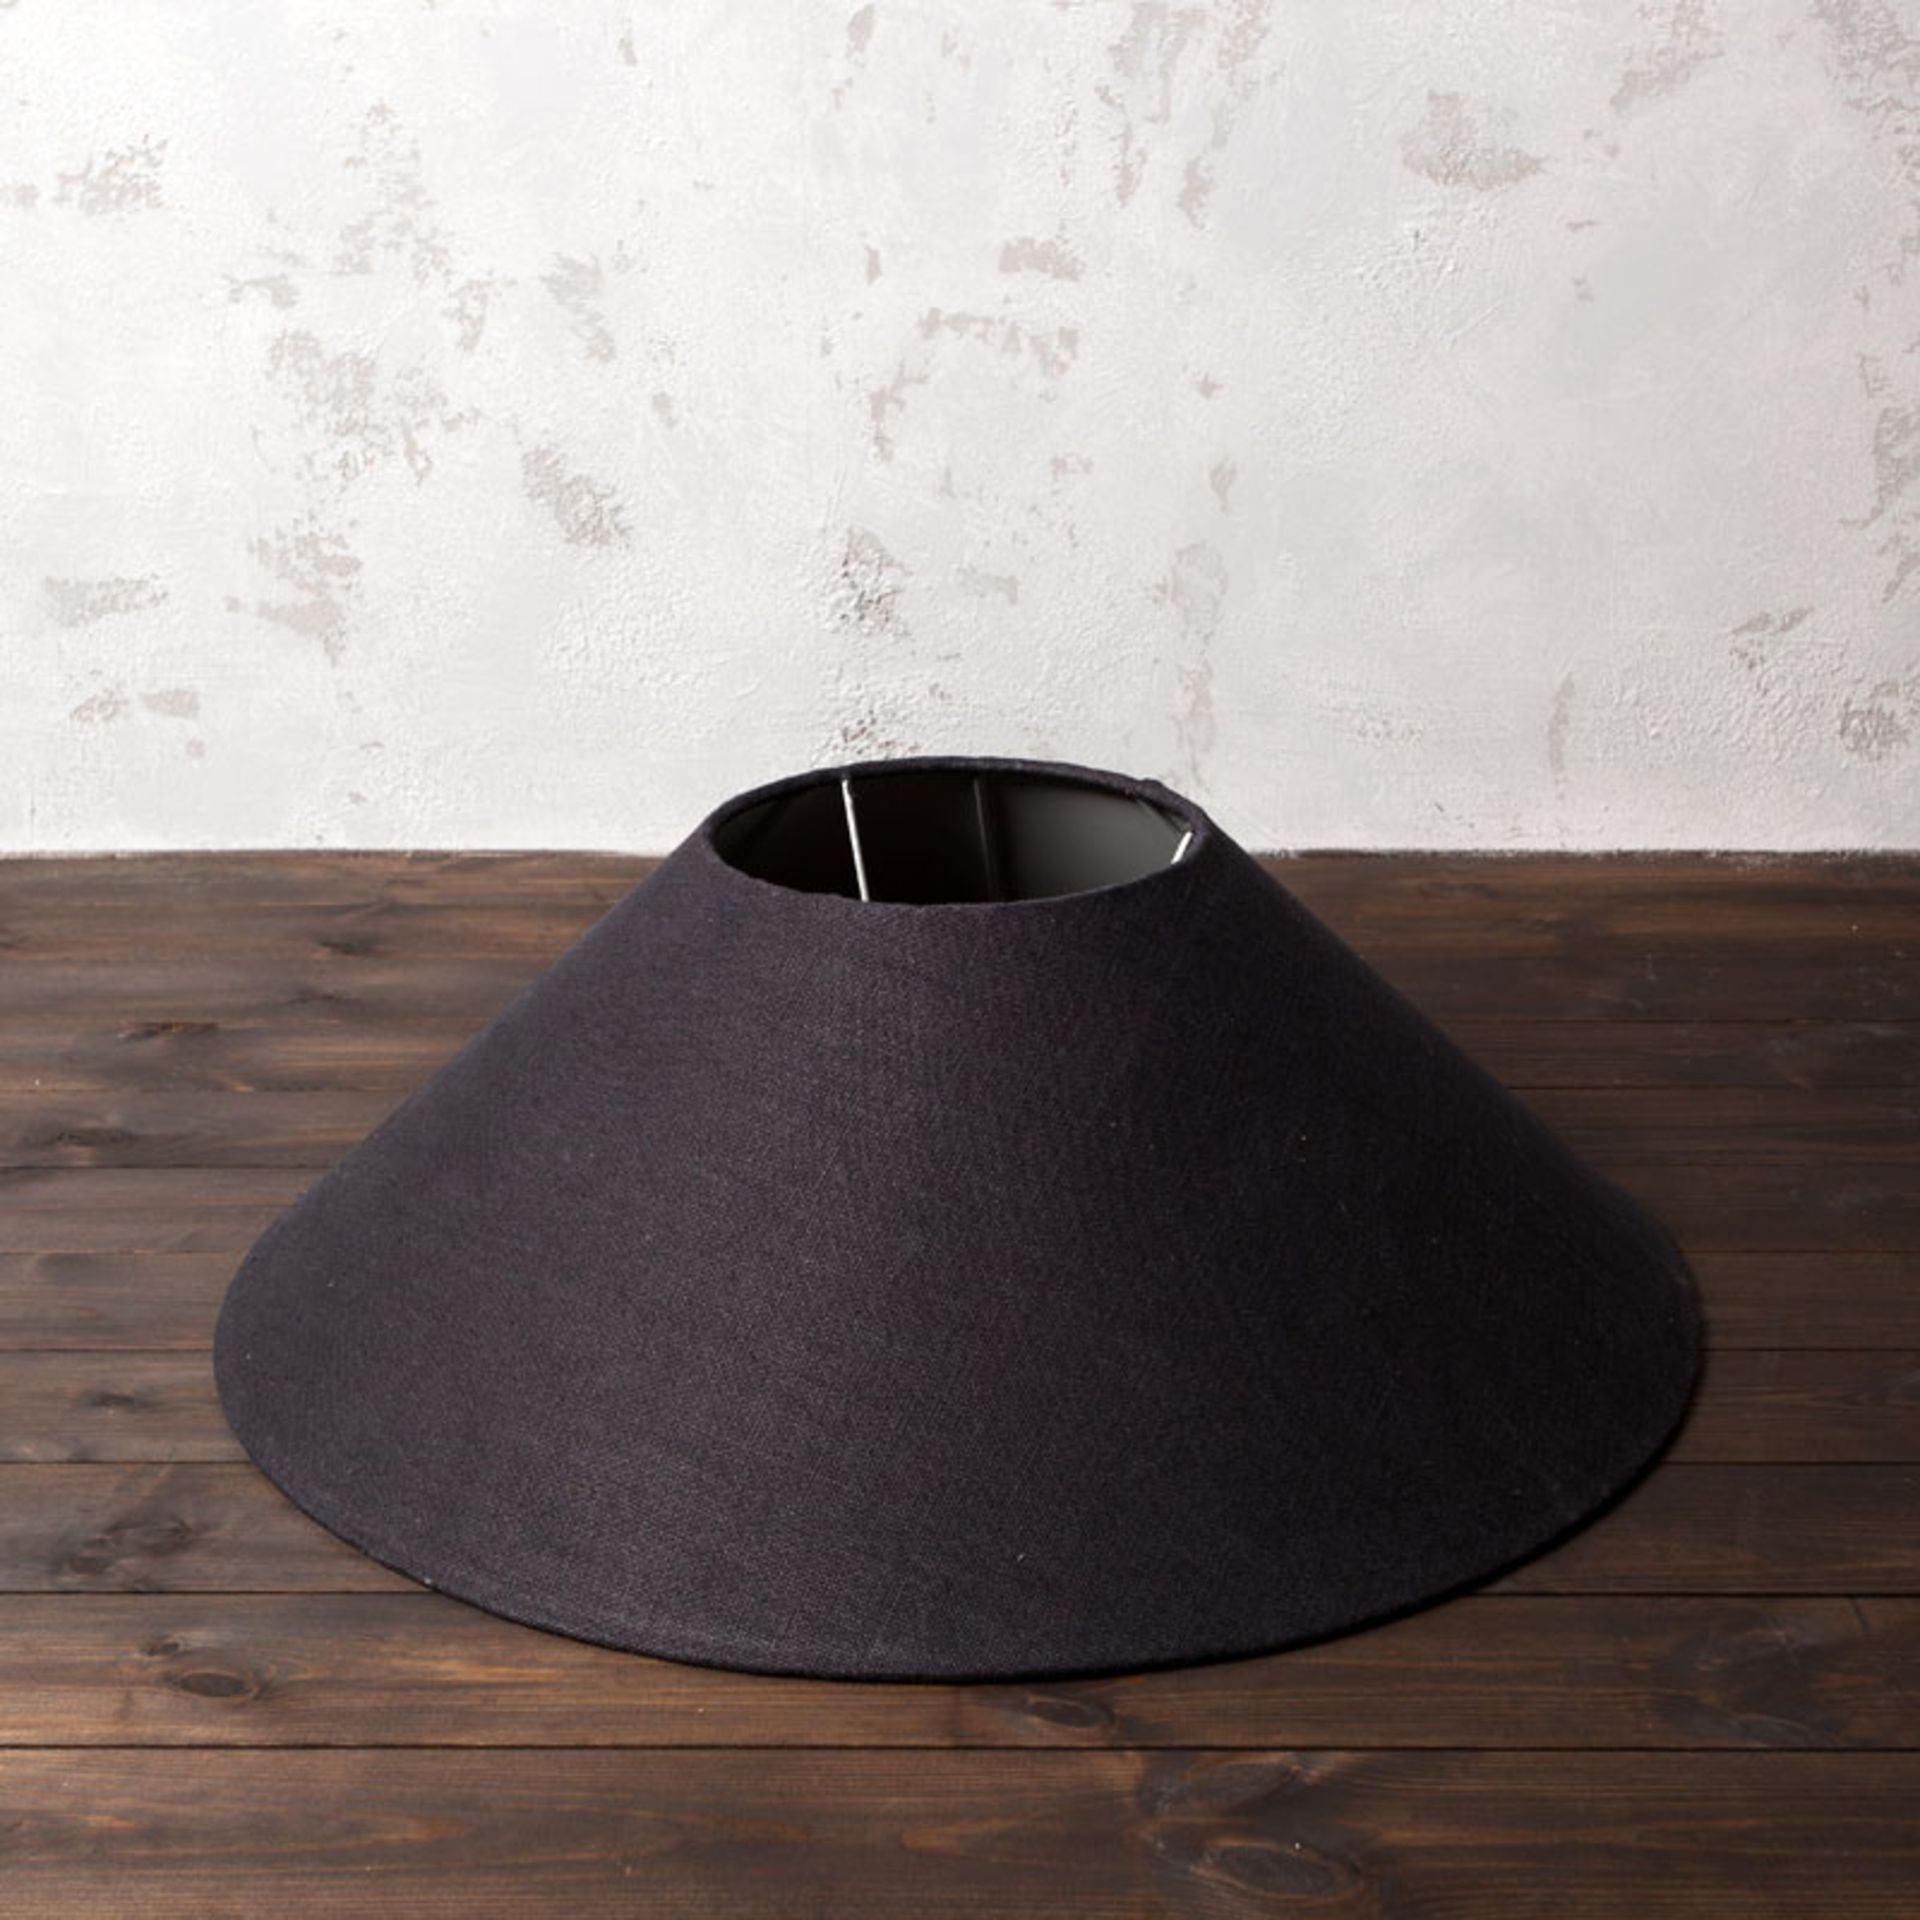 Lot 4 - Coolie Shade Hemp Charcoal 75 5 x 75 5 x 26cm The Rounded Shape And Opal Interiors Of These Coolie